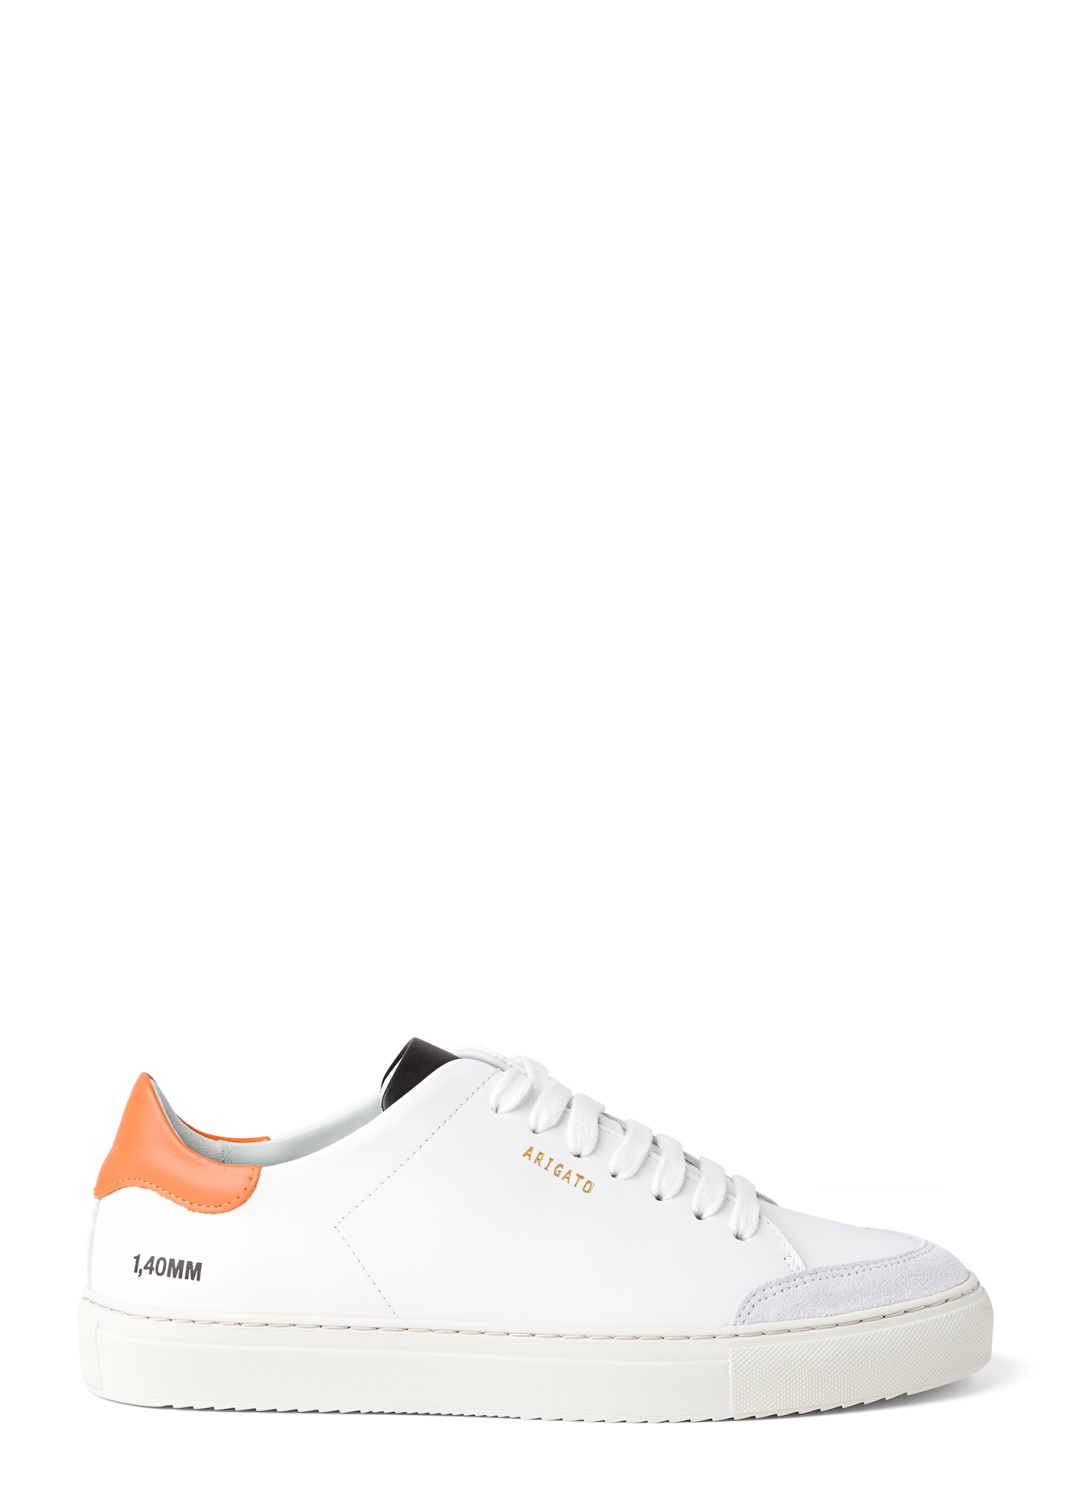 Clean 90 Sneaker - White Leather image number 0